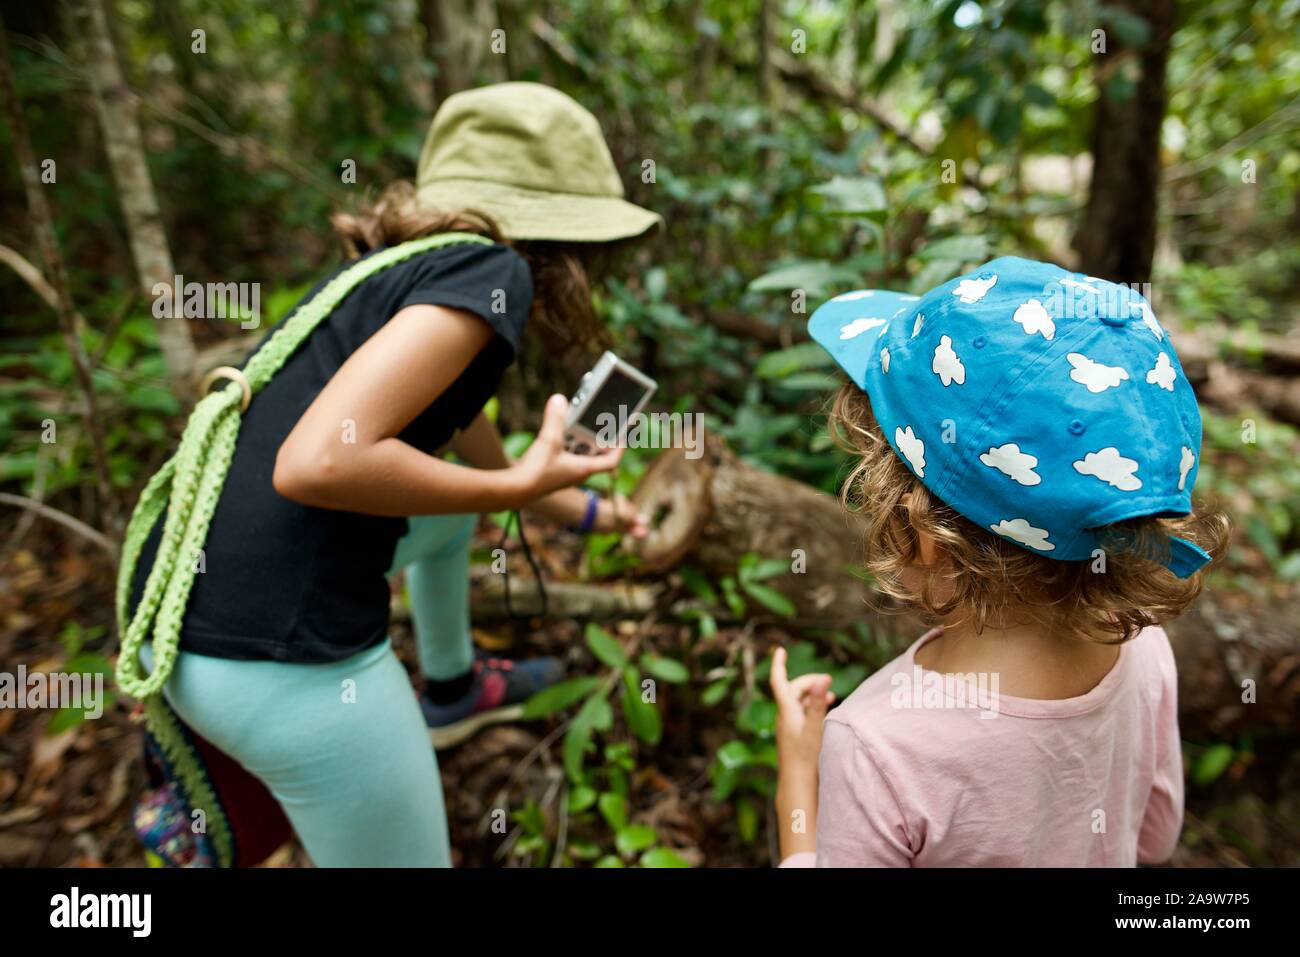 School age children exploring nature, Honeyeater lookout hiking trail, Conway national park, Airlie Beach, Queensland, Australia Stock Photo